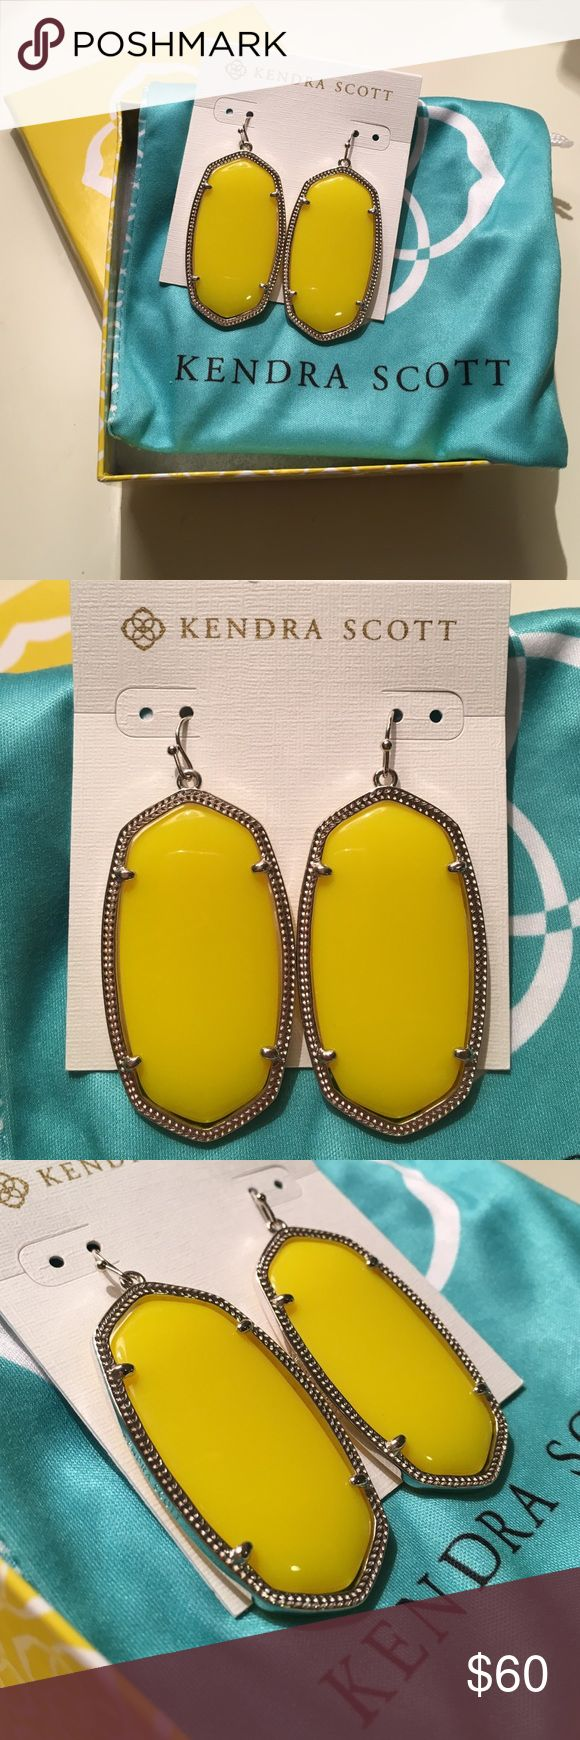 I want a pair of Kendra Scott yellow Danielle earrings. I have an Elsa Top and a fun yellow cardigan that these earrings would perfectly match. :)